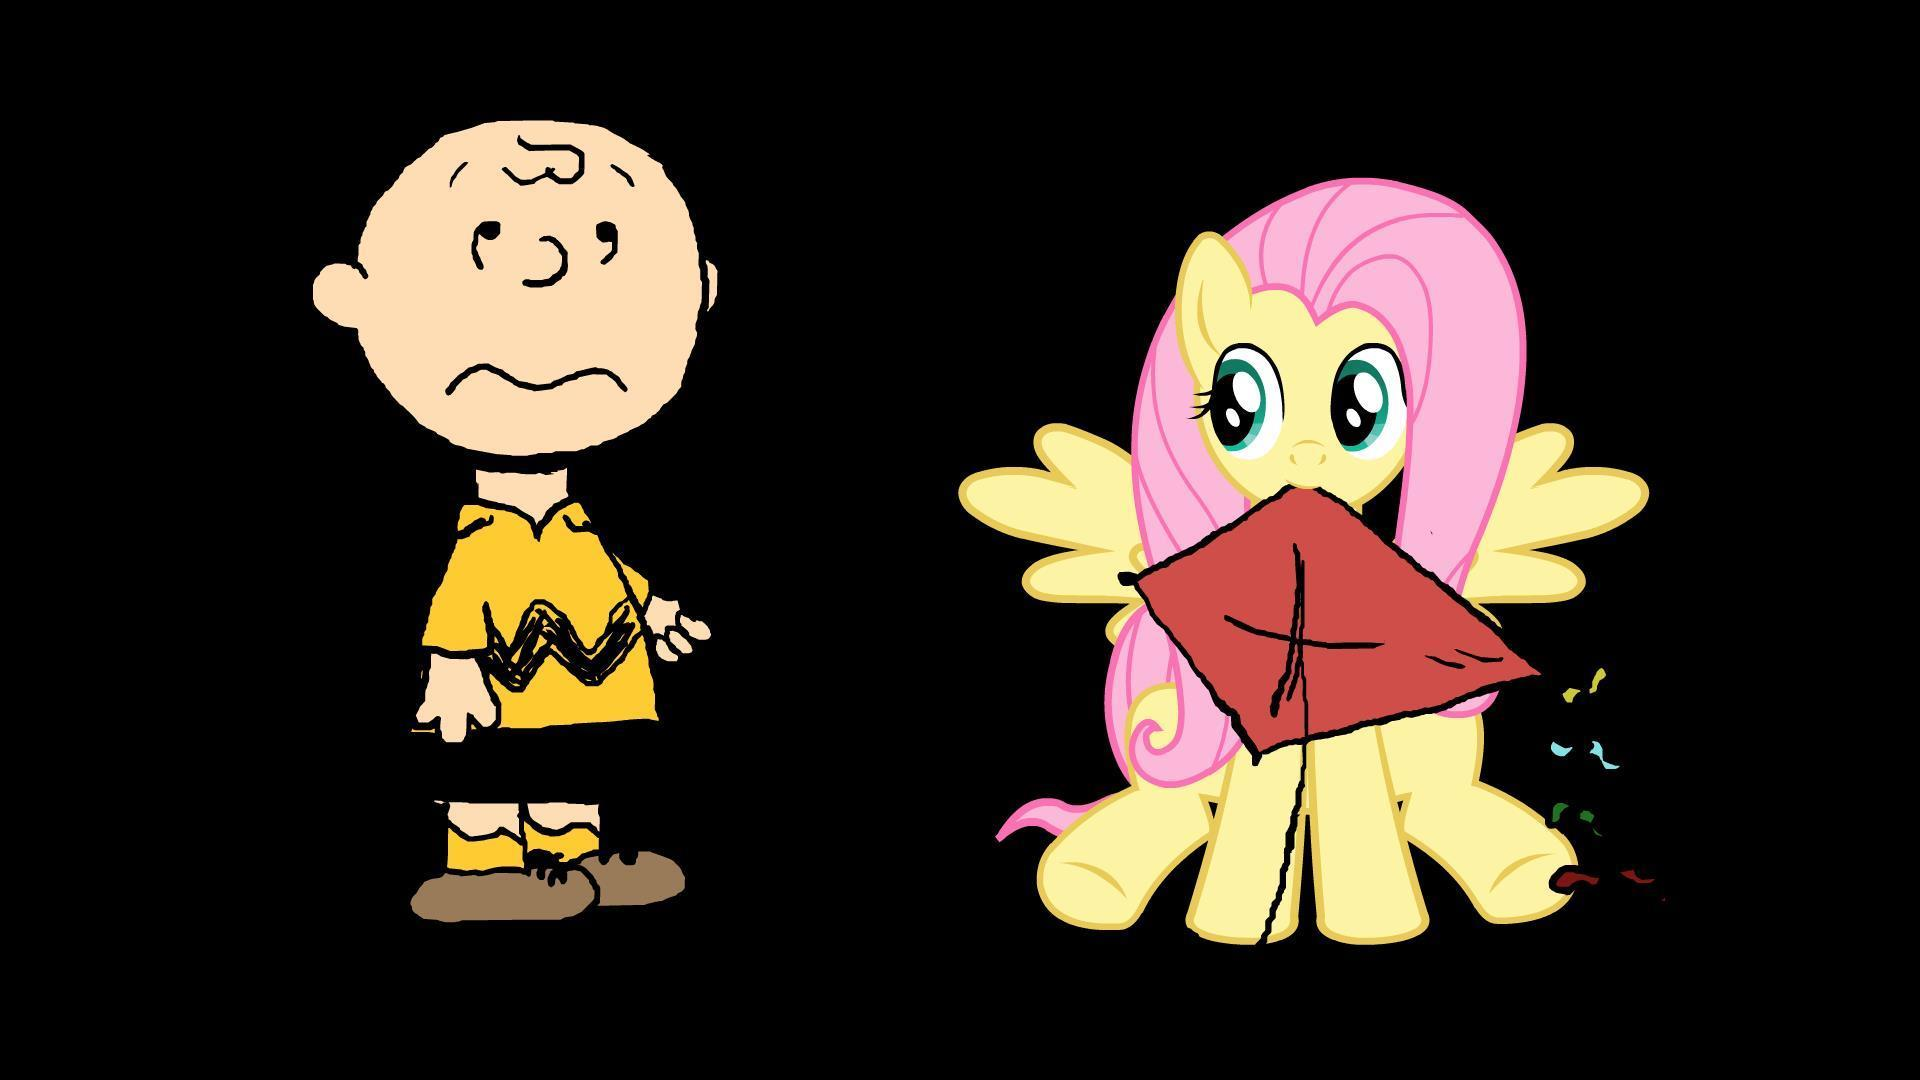 cartoons-charlie-brown-and-fluttershy-wallpaper-HD